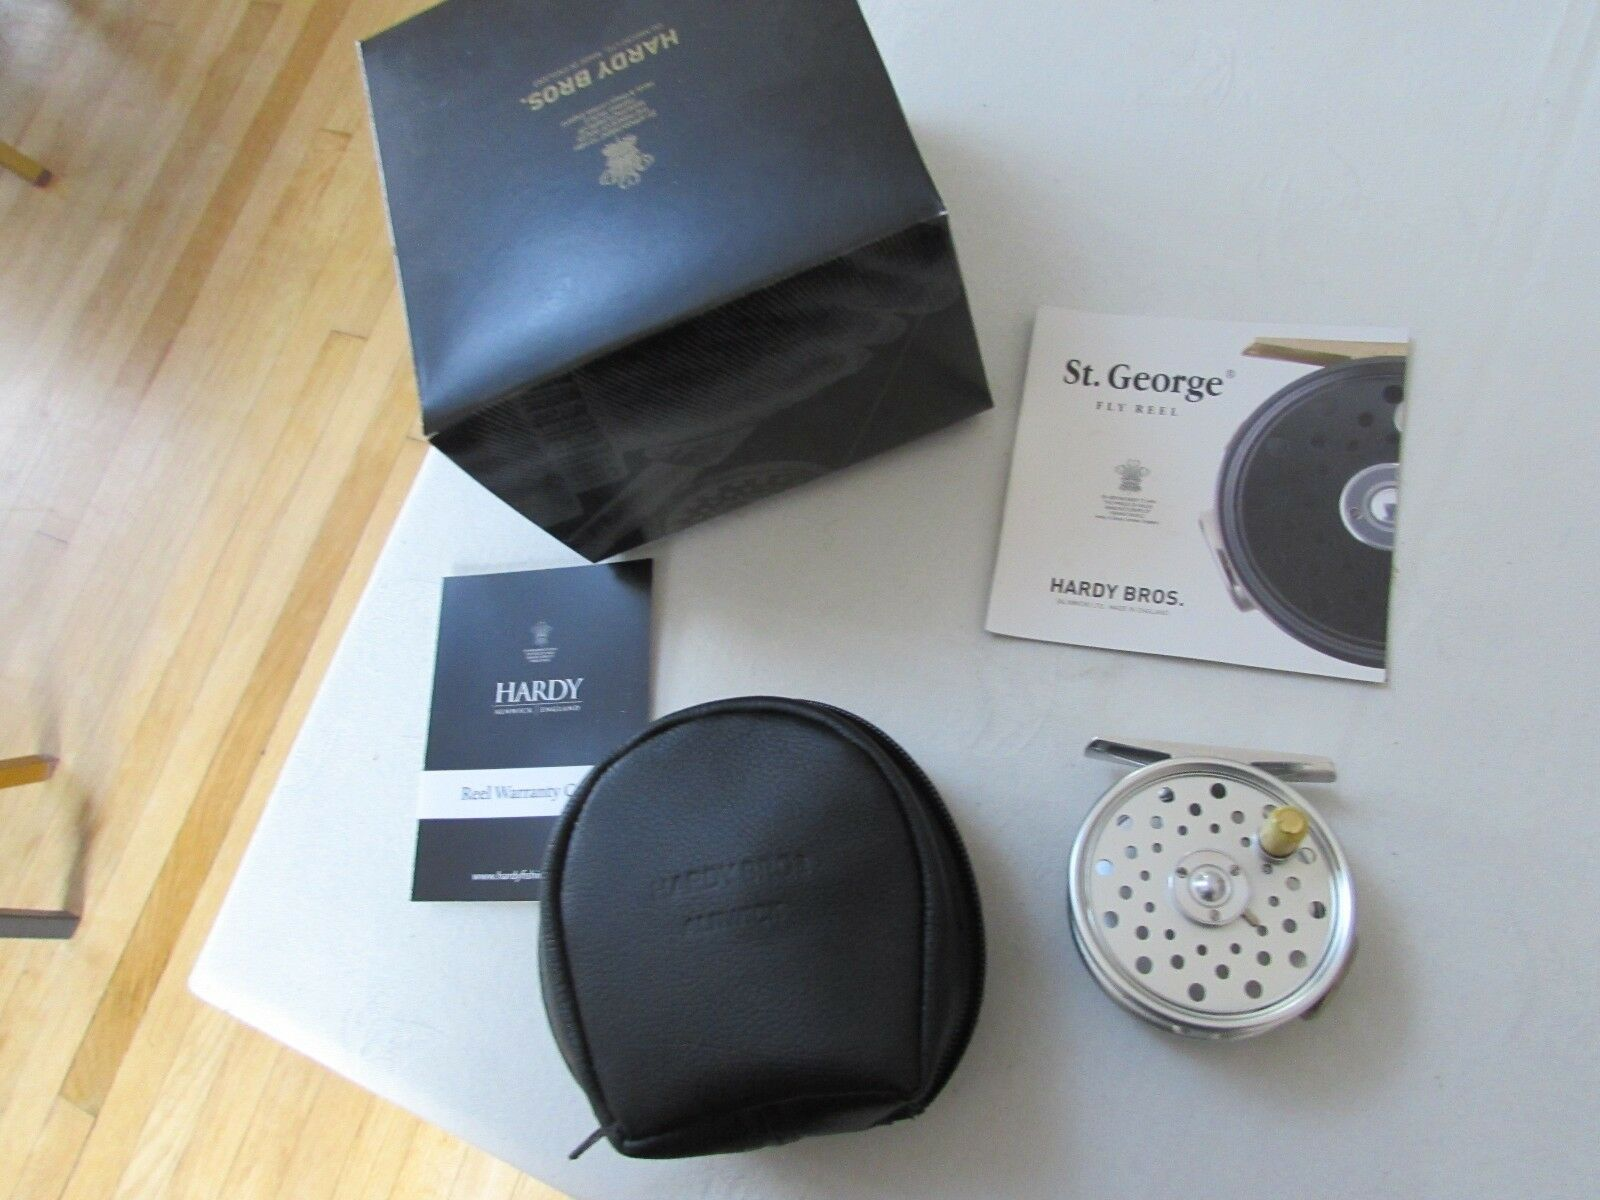 NUOVO in scatola Hardy St George Junior Spitfire RHW Trota Fly Fishing REEL